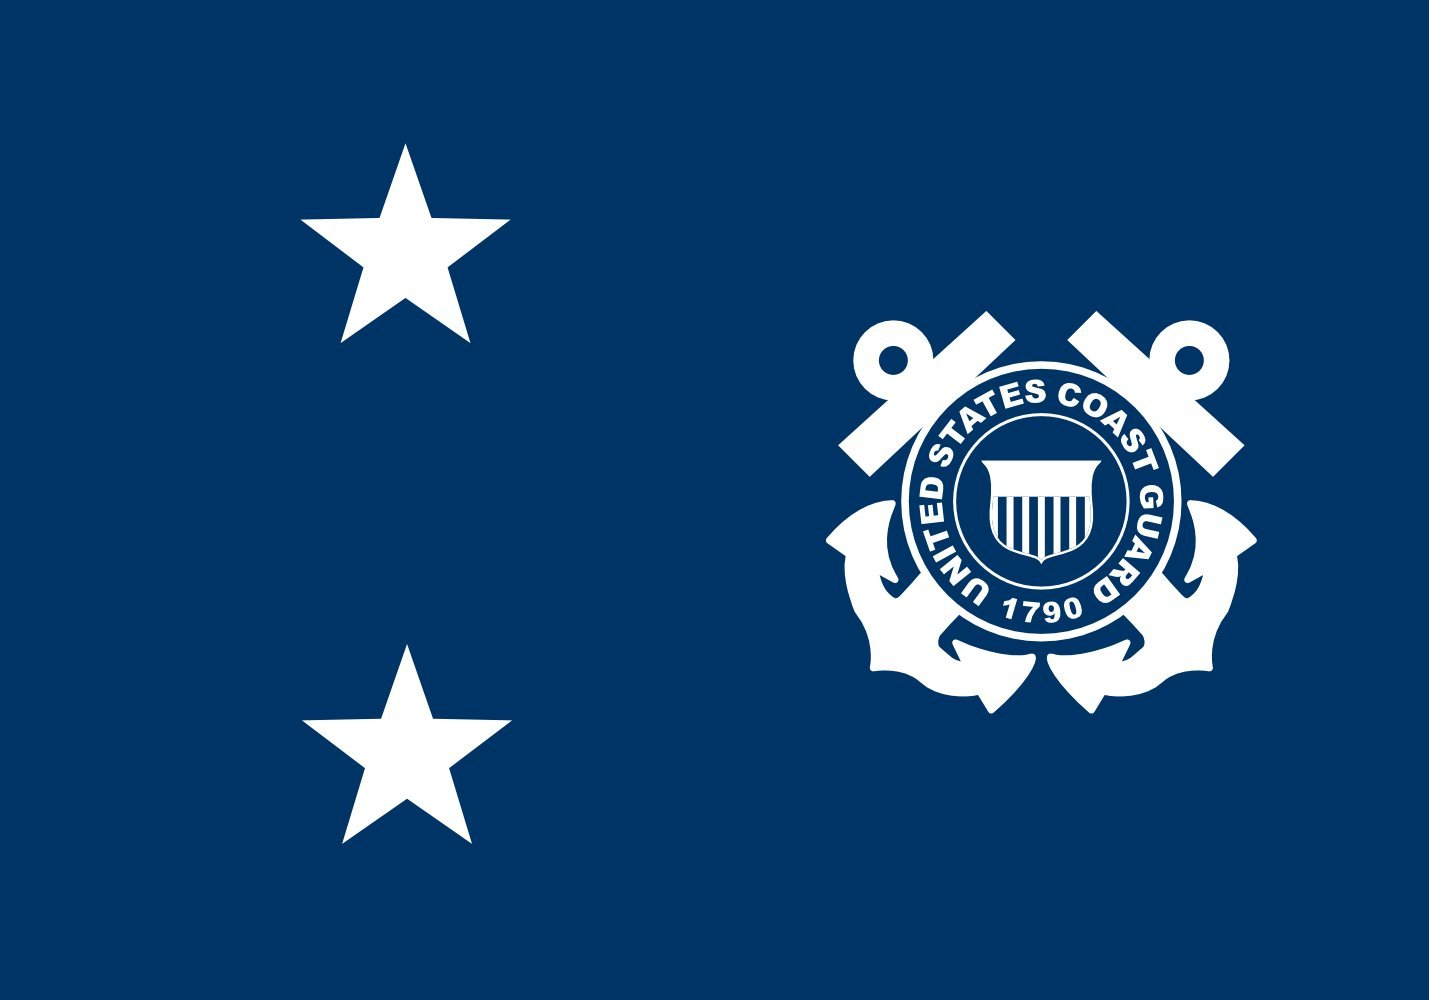 magFlags Large Flag Rear Admiral in The United States Coast Guard | Landscape Flag | 1.35m² | 14.5sqft | 90x150cm | 3x5ft - 100% Made in Germany - Long Lasting Outdoor Flag